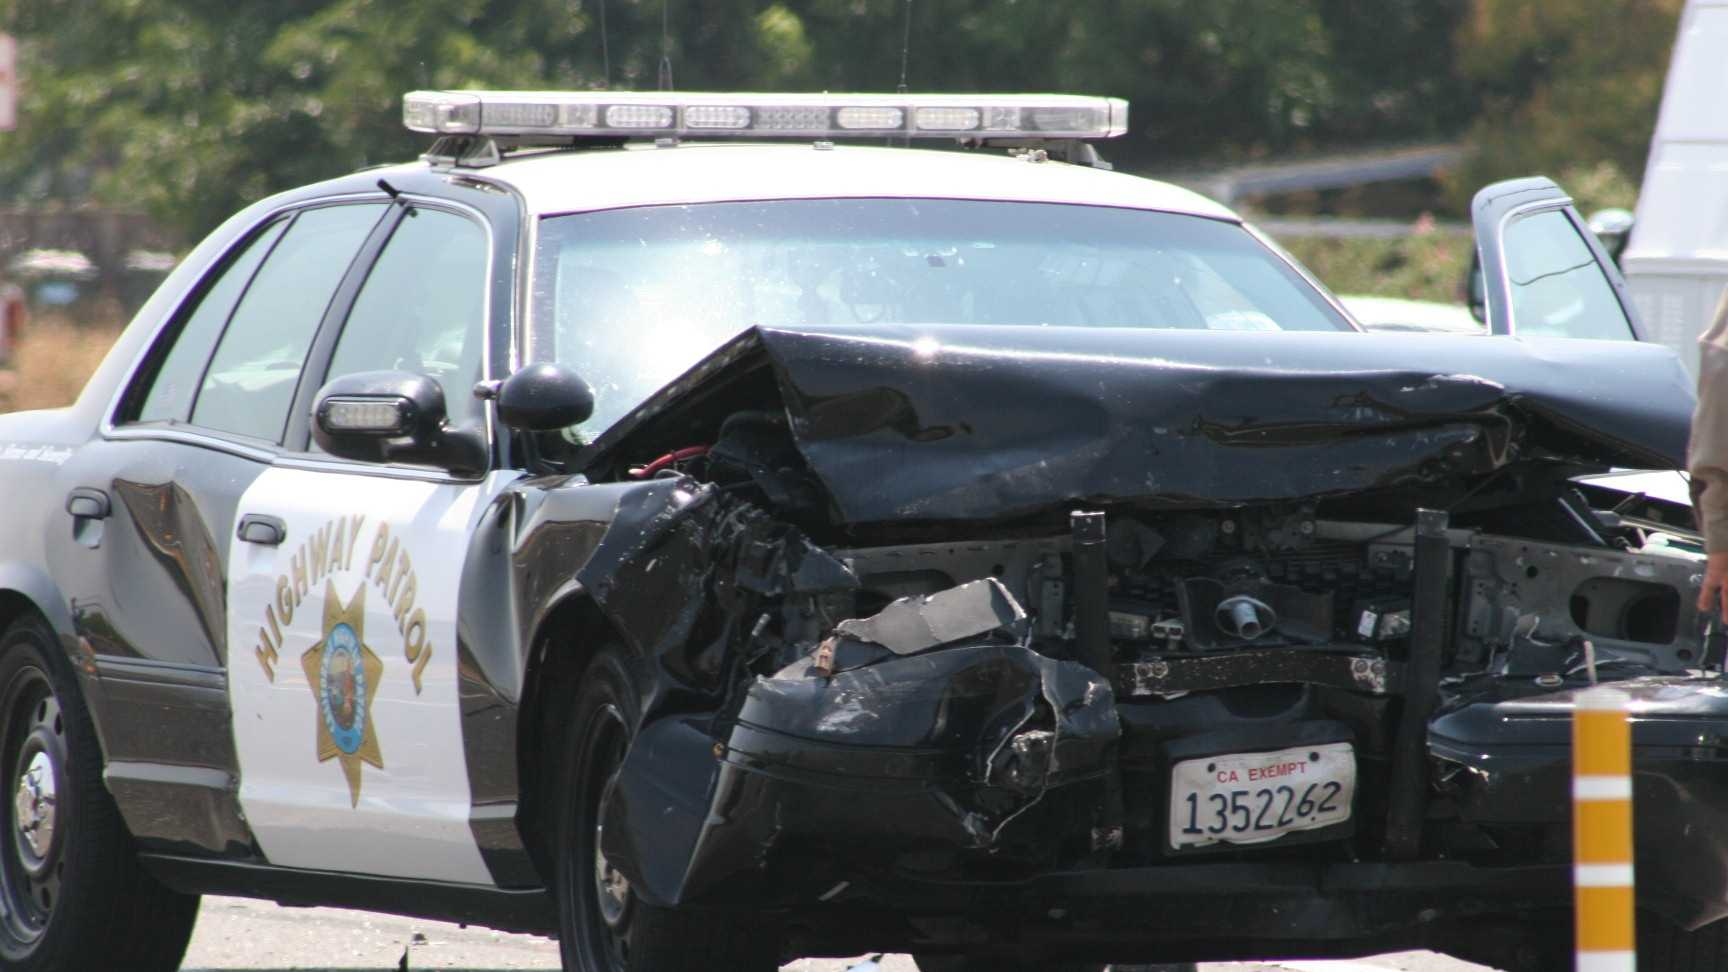 The CHP said the civilian car was likely turning into a parking lot, or making a U-turn, and didn't yield to the siren.